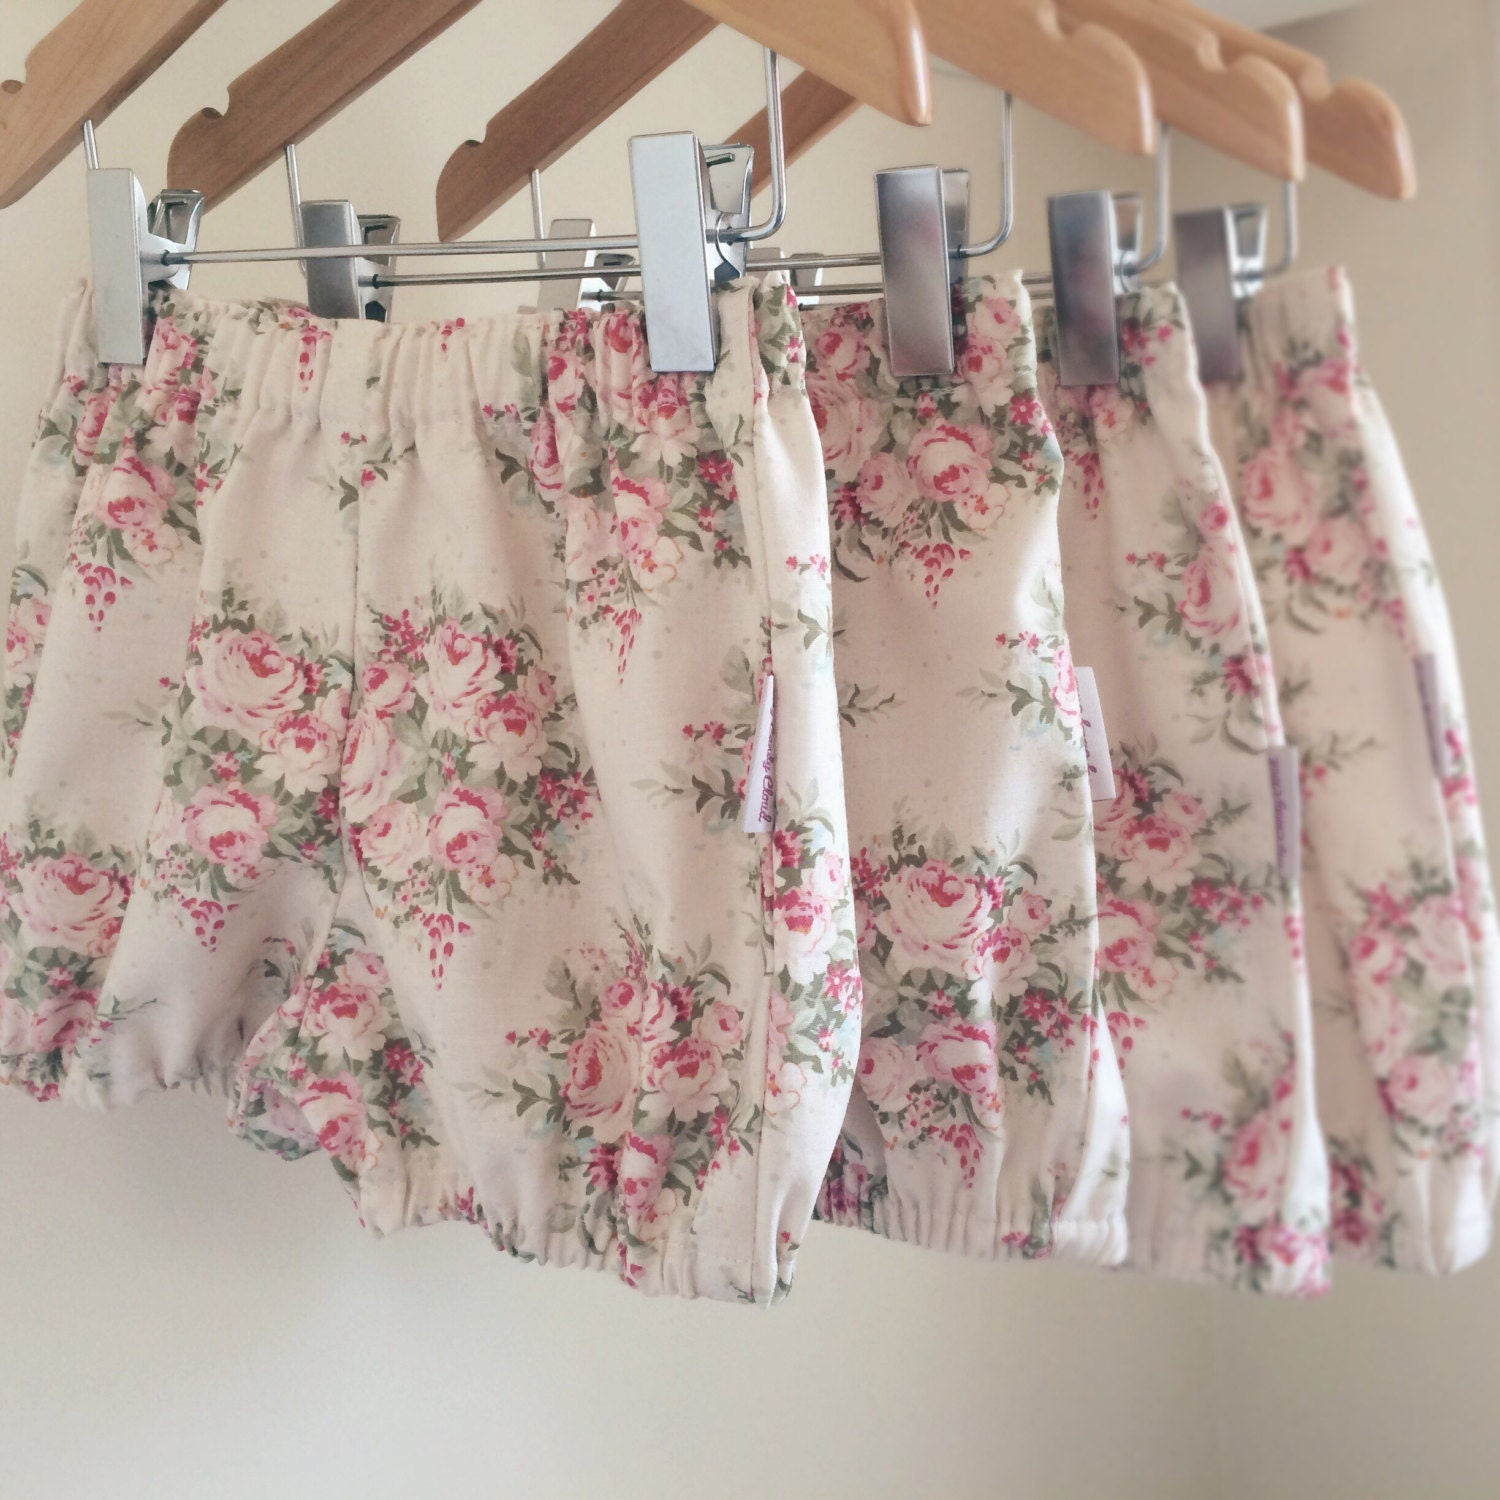 Vintage inspired girl baby bloomers Toddler bloomers Girls bloomers Baby bubble shorts Toddler bubble shorts Girls shorts UK Made to order